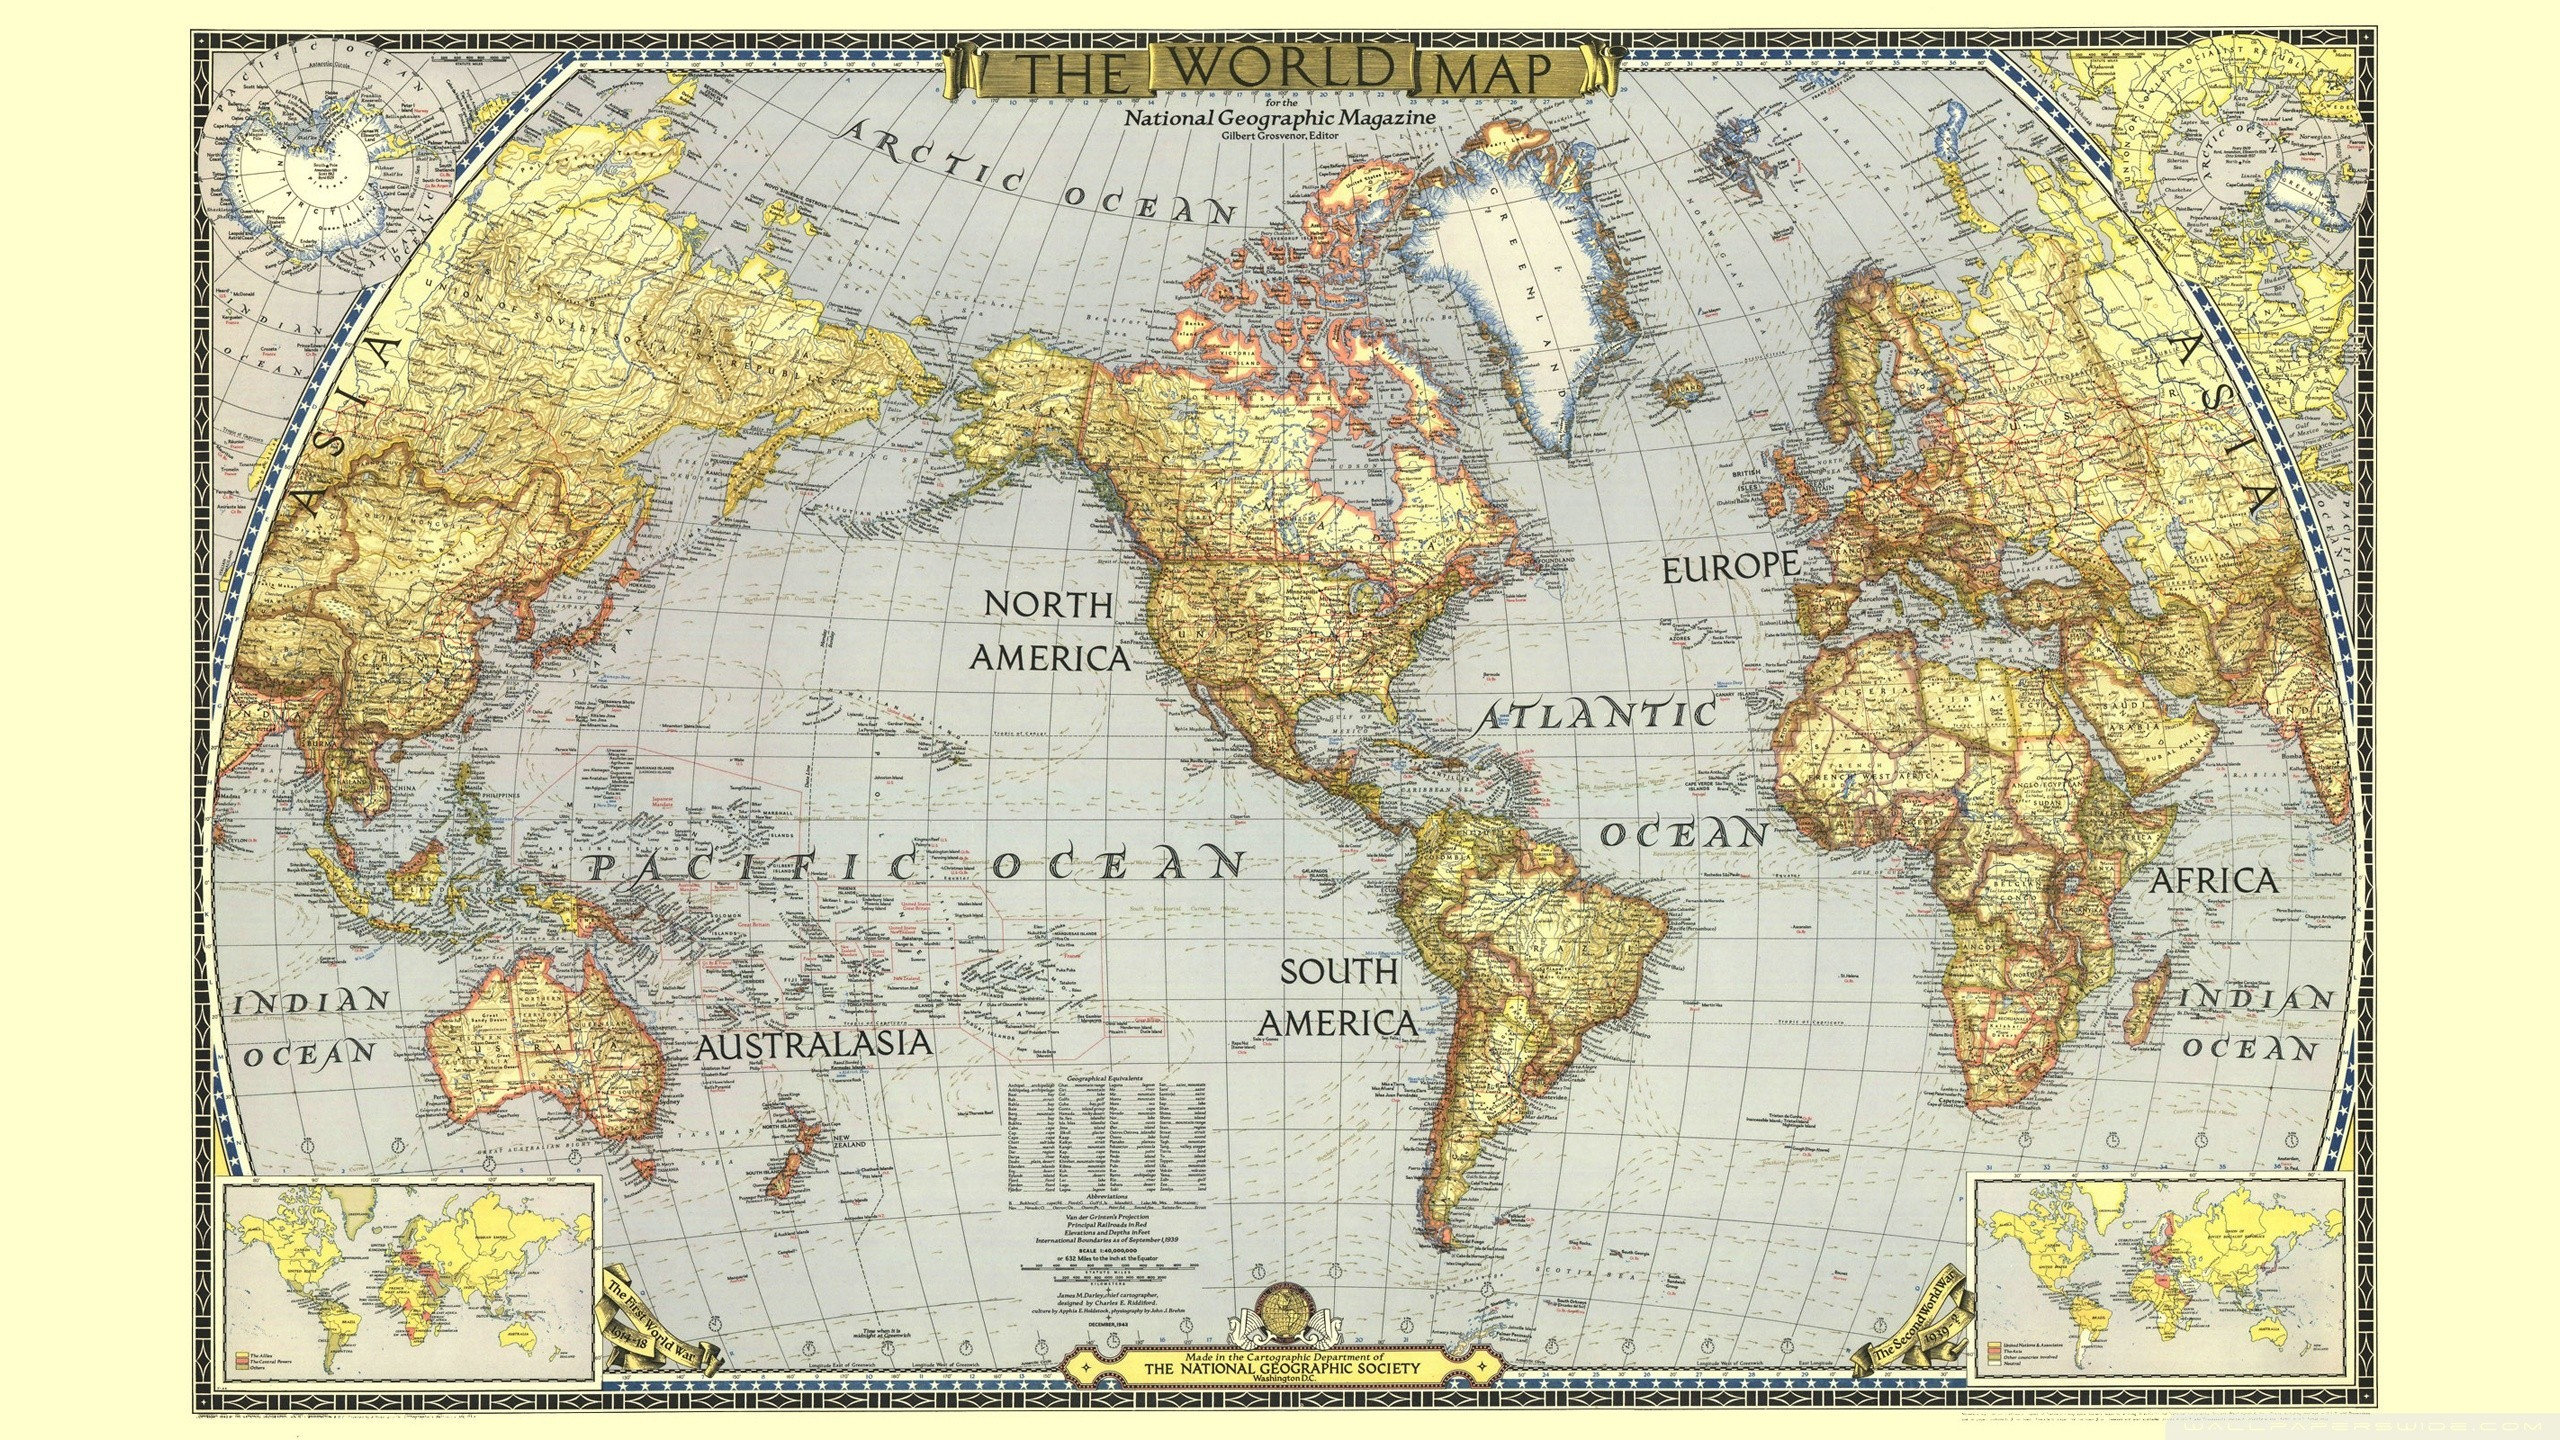 Best hq world map images free download image collection 1950x1277 hq 1950x1277 px resolution world map 144813024 qige download gumiabroncs Gallery